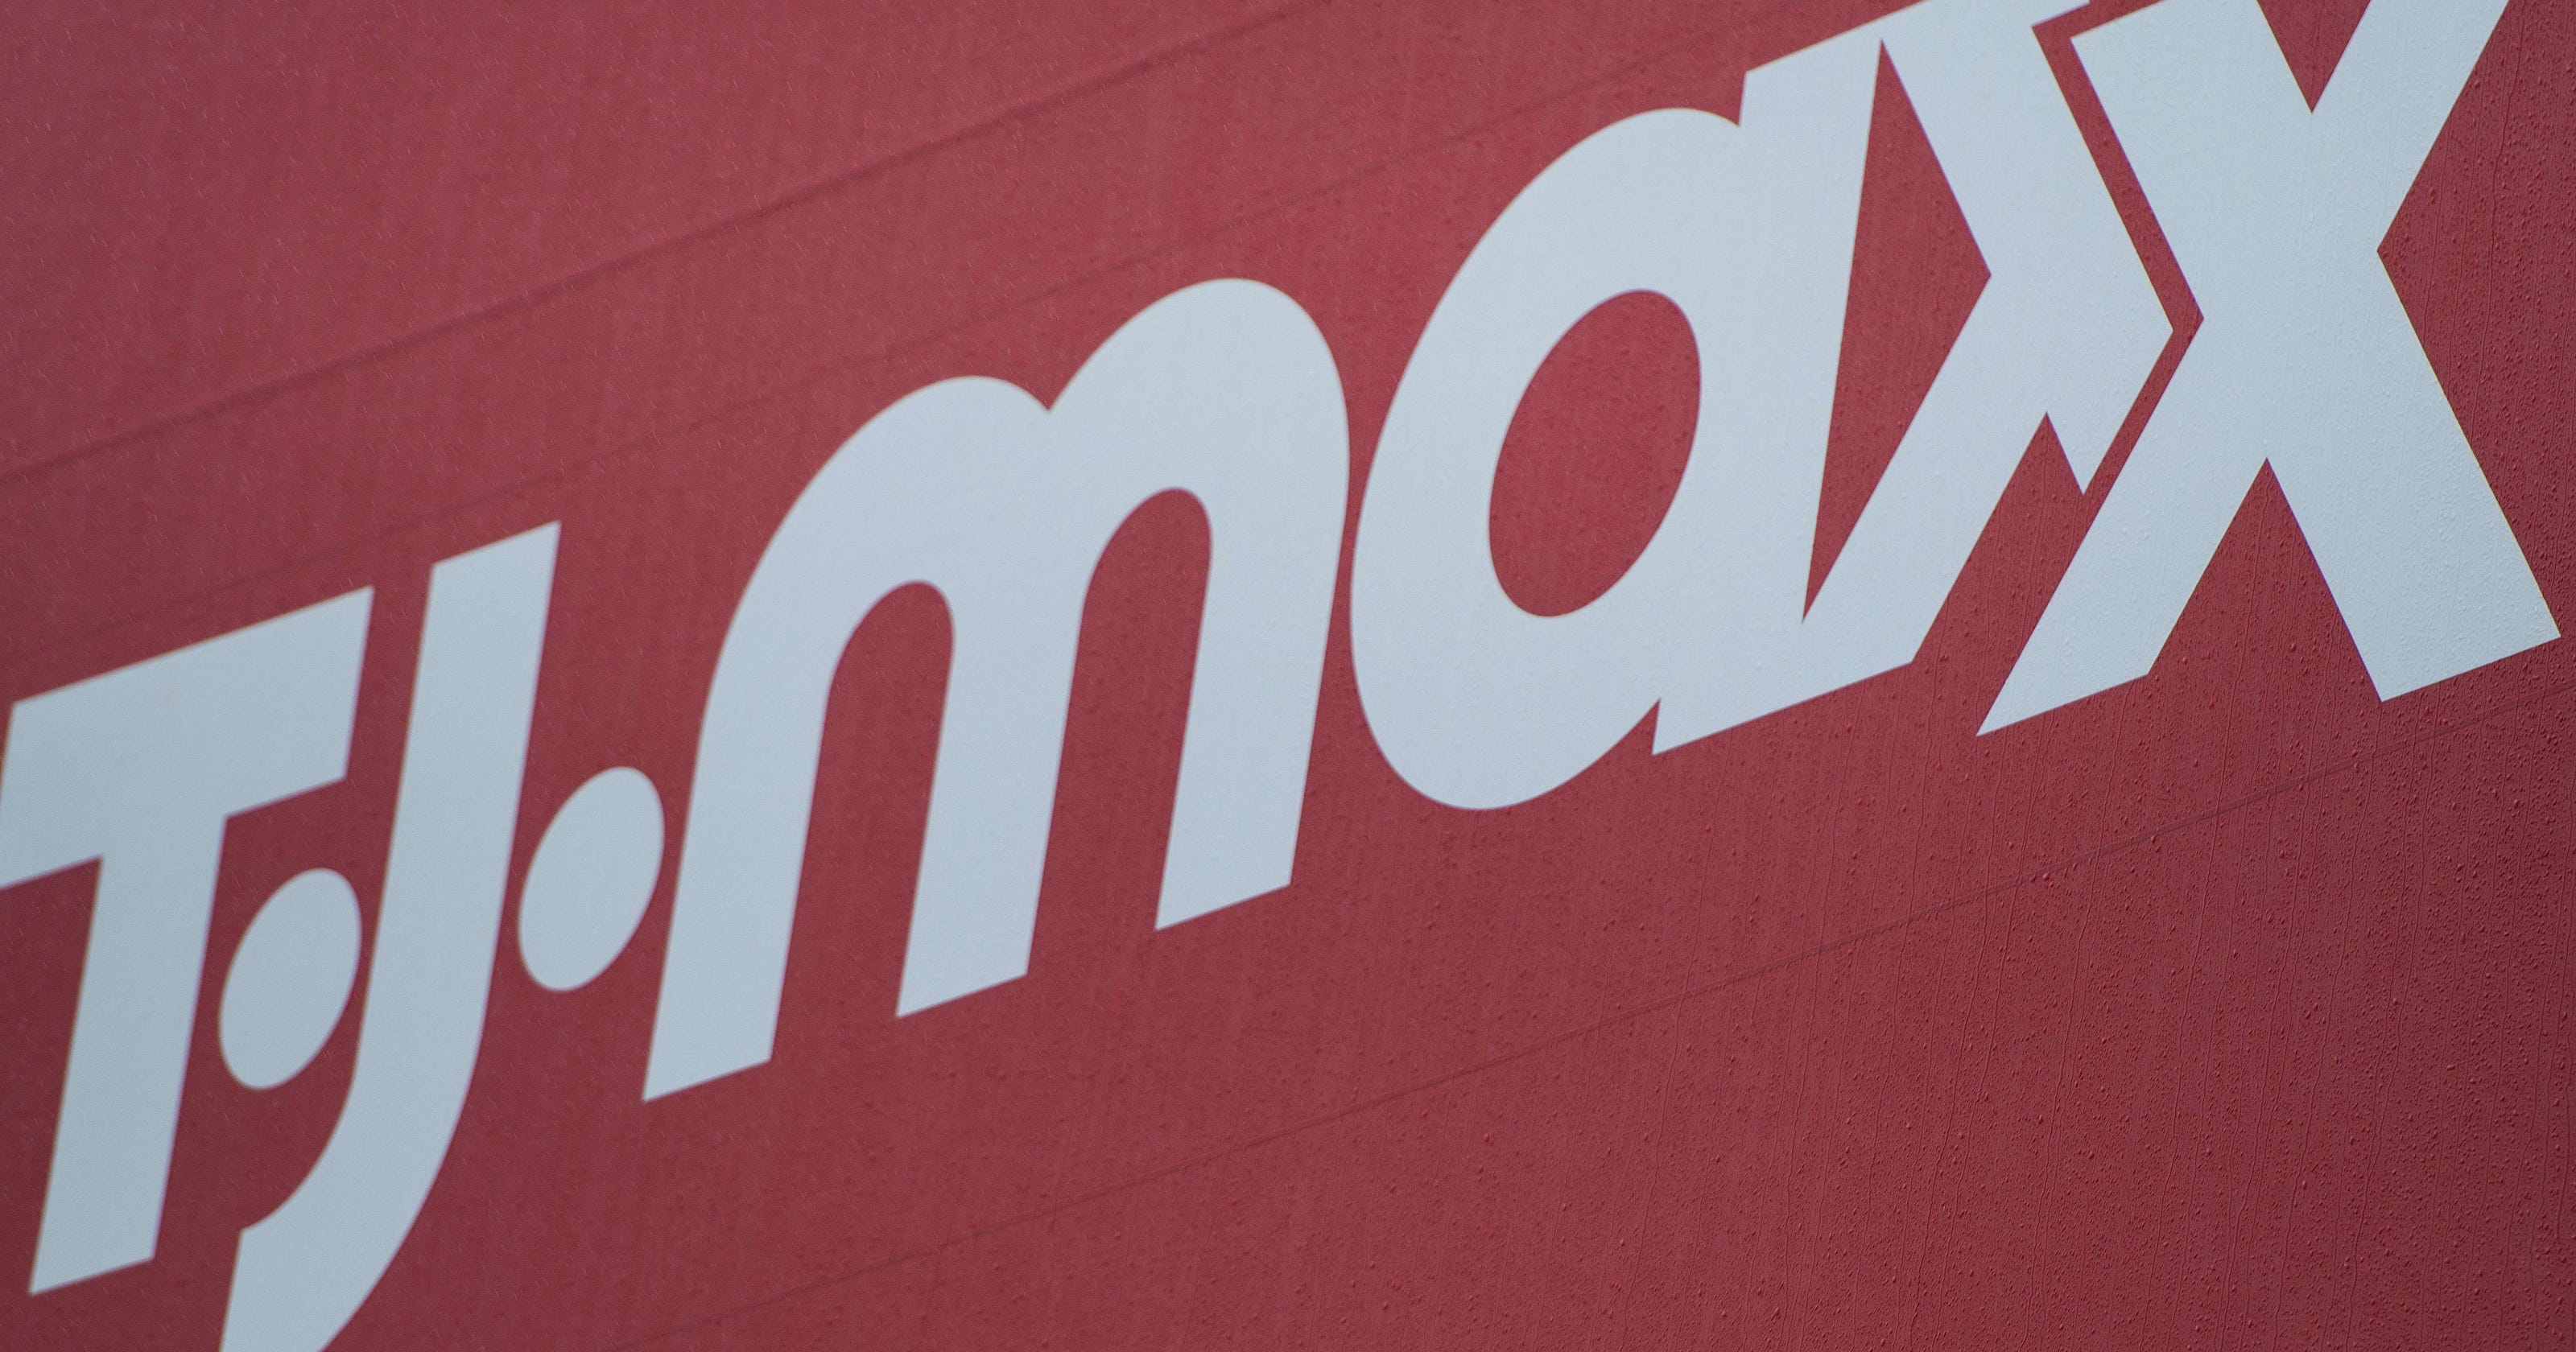 T J  Maxx owner could open 1,300 more stores